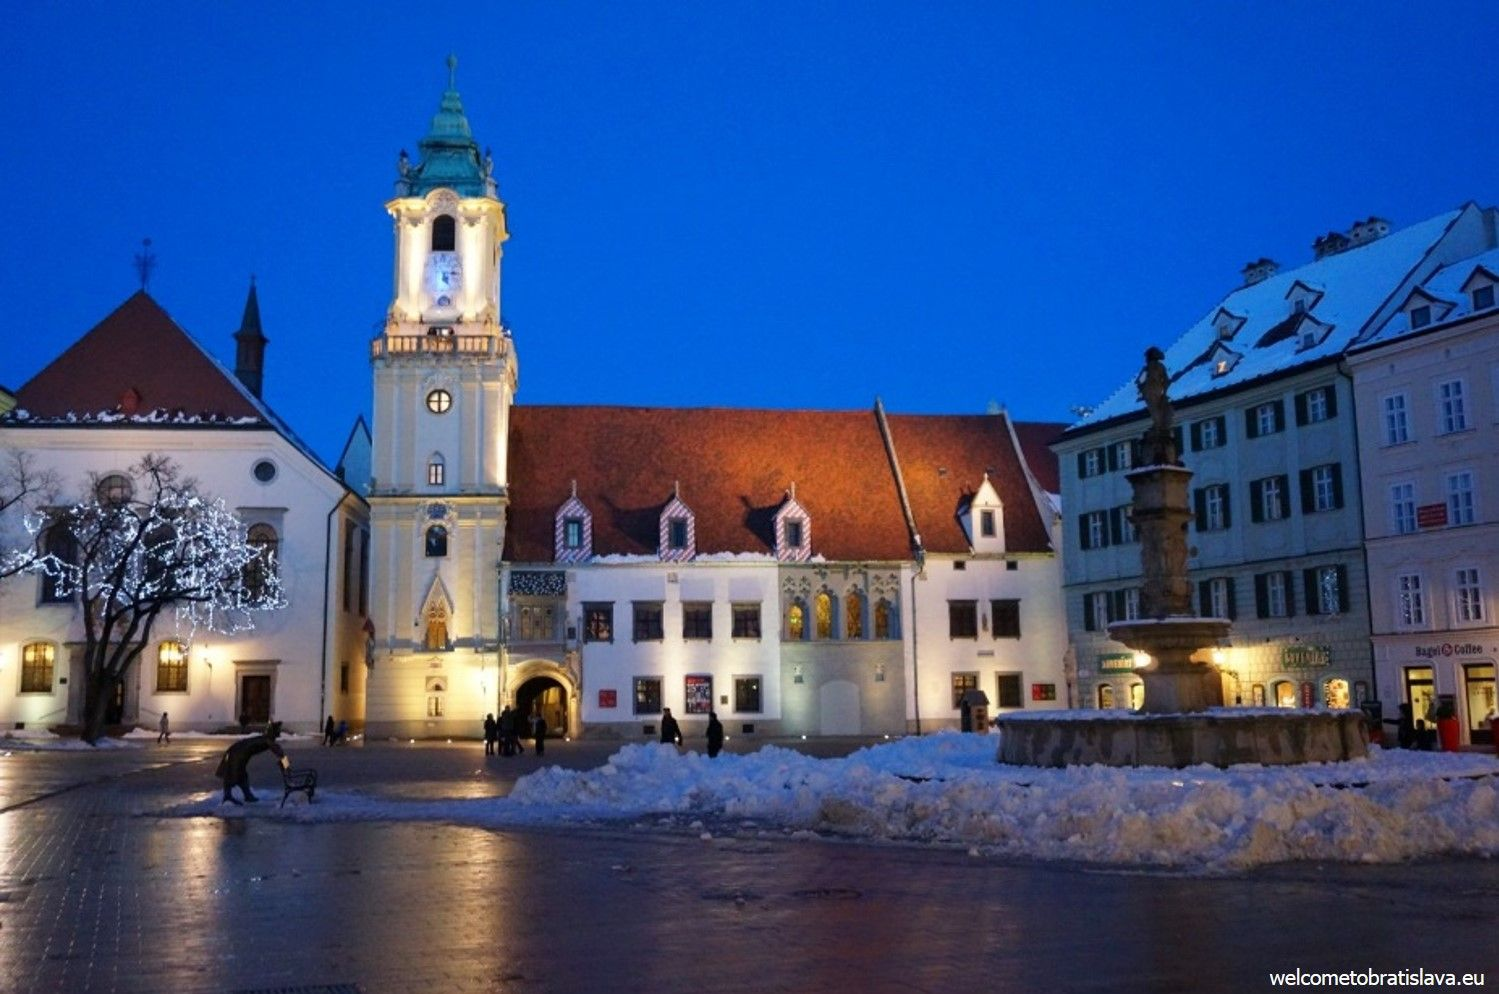 The Town Hall at the Main square